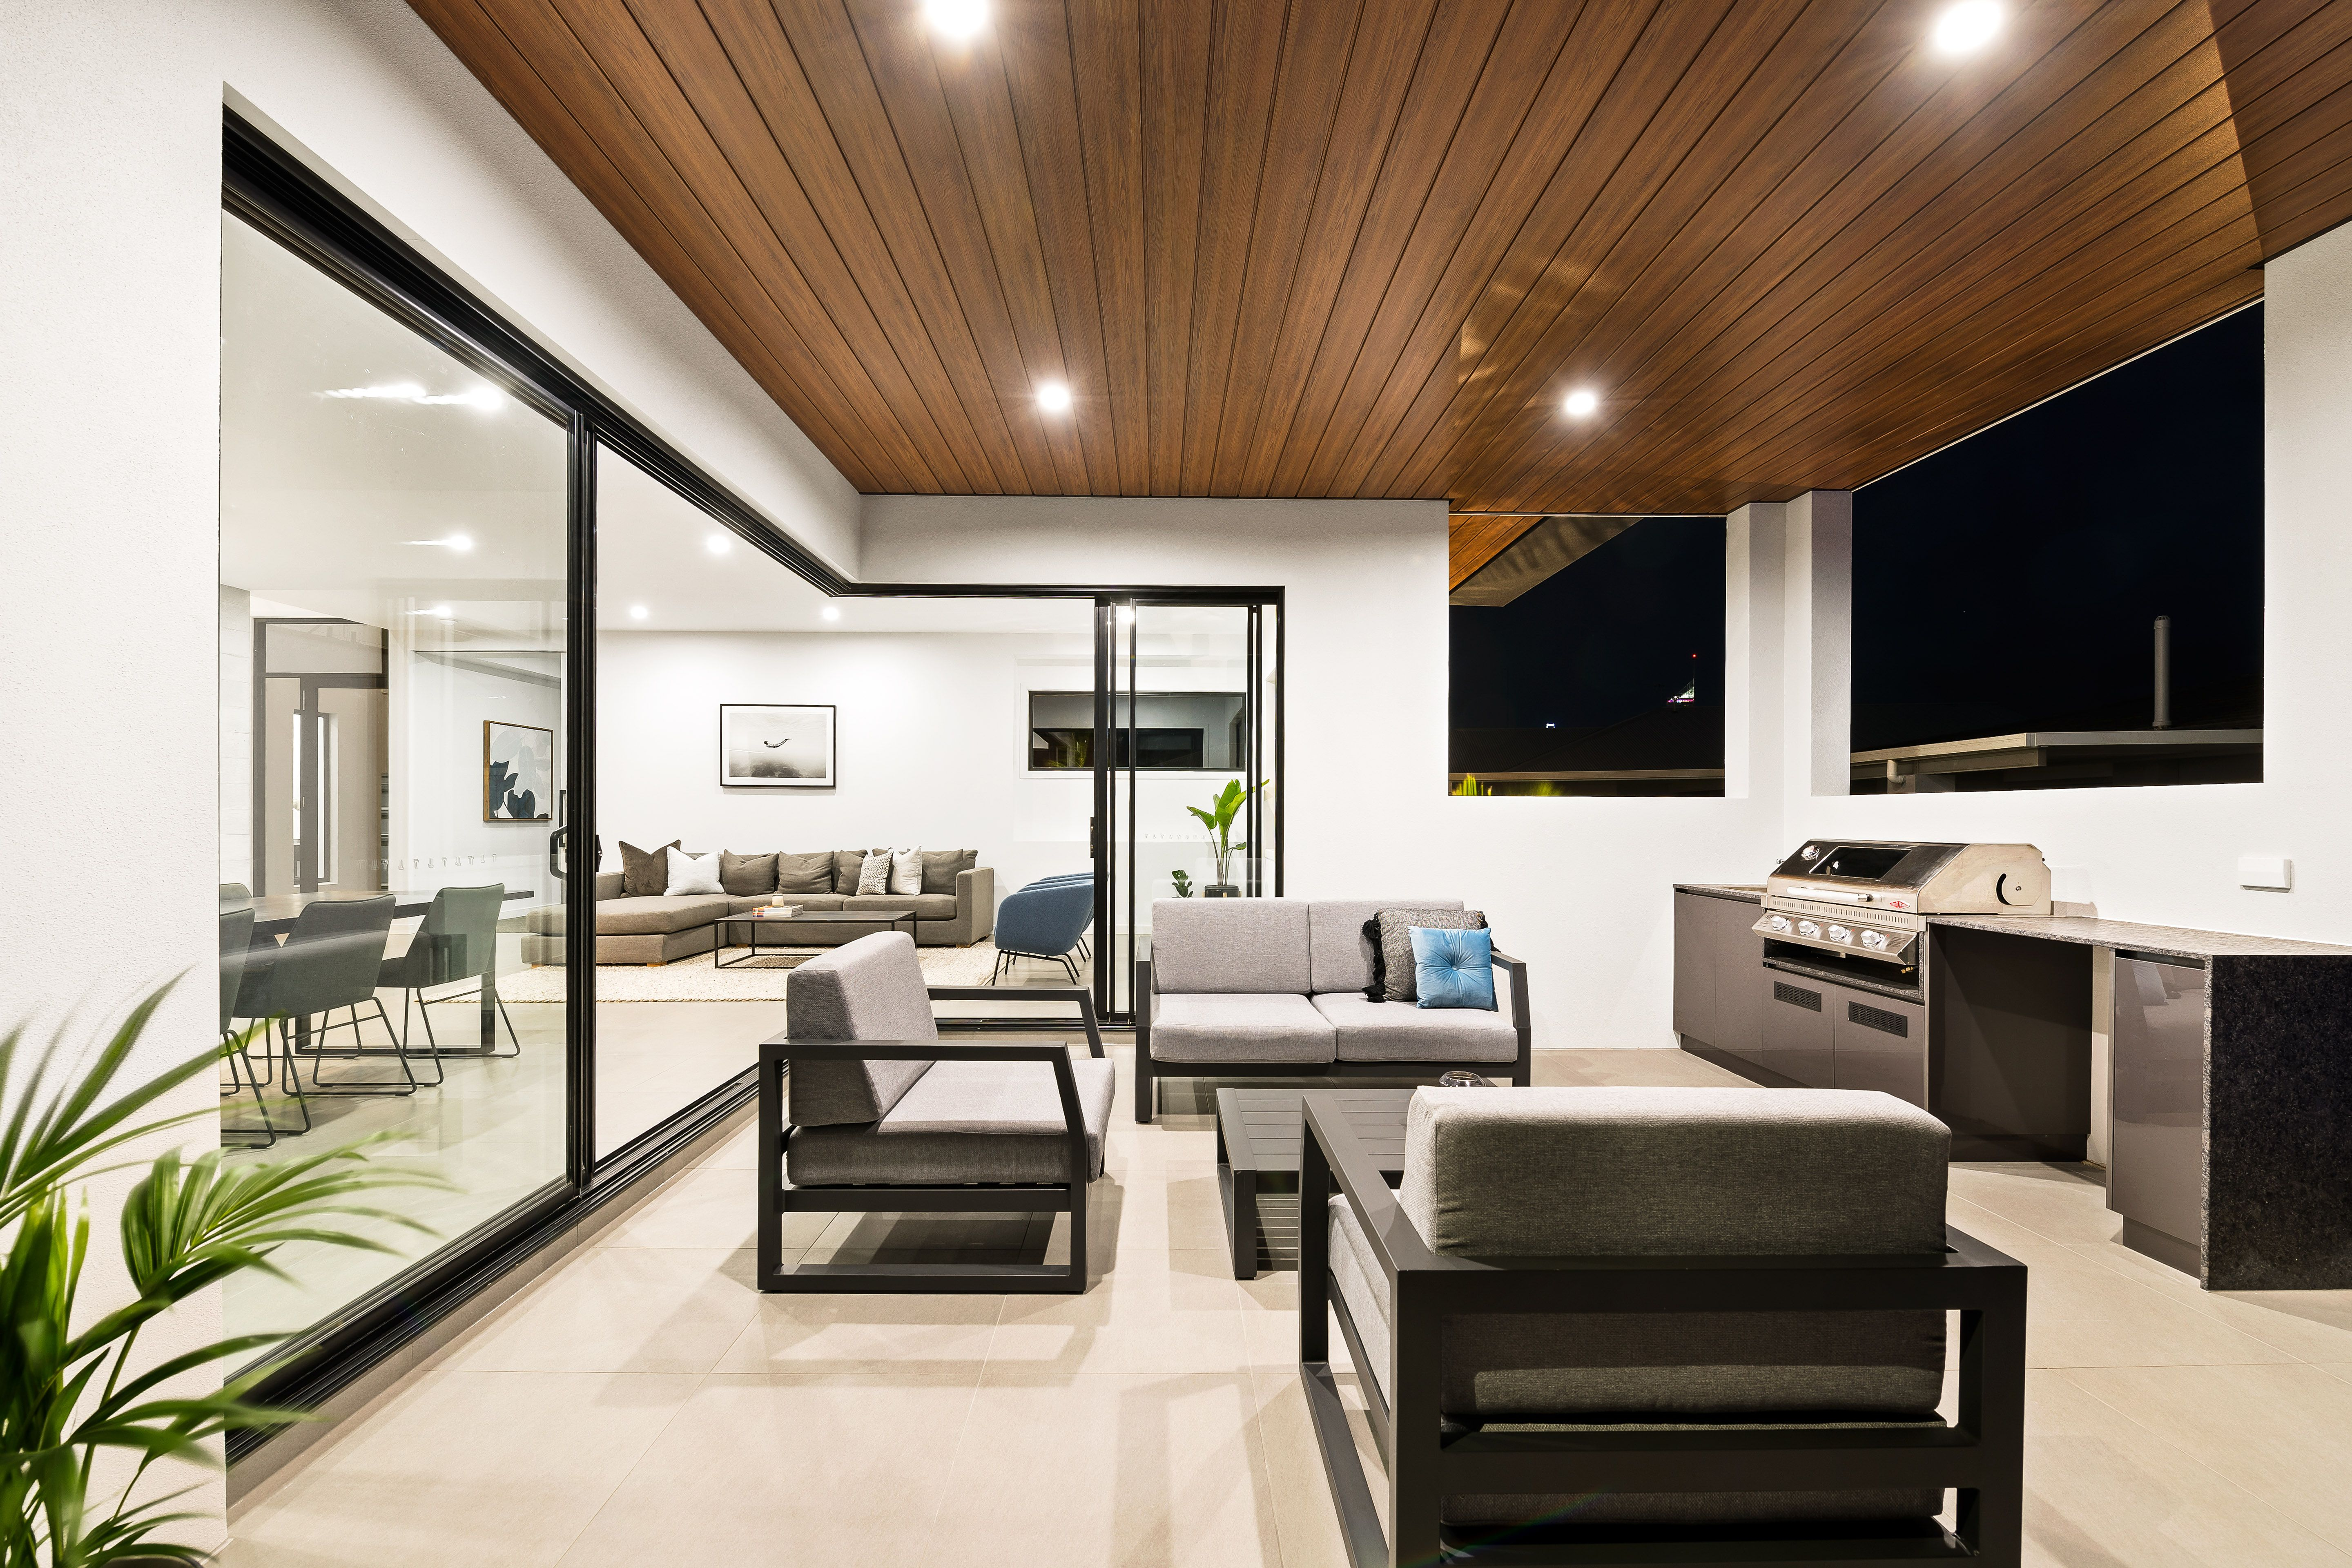 Outdoor living made easy with this custom built outdoor